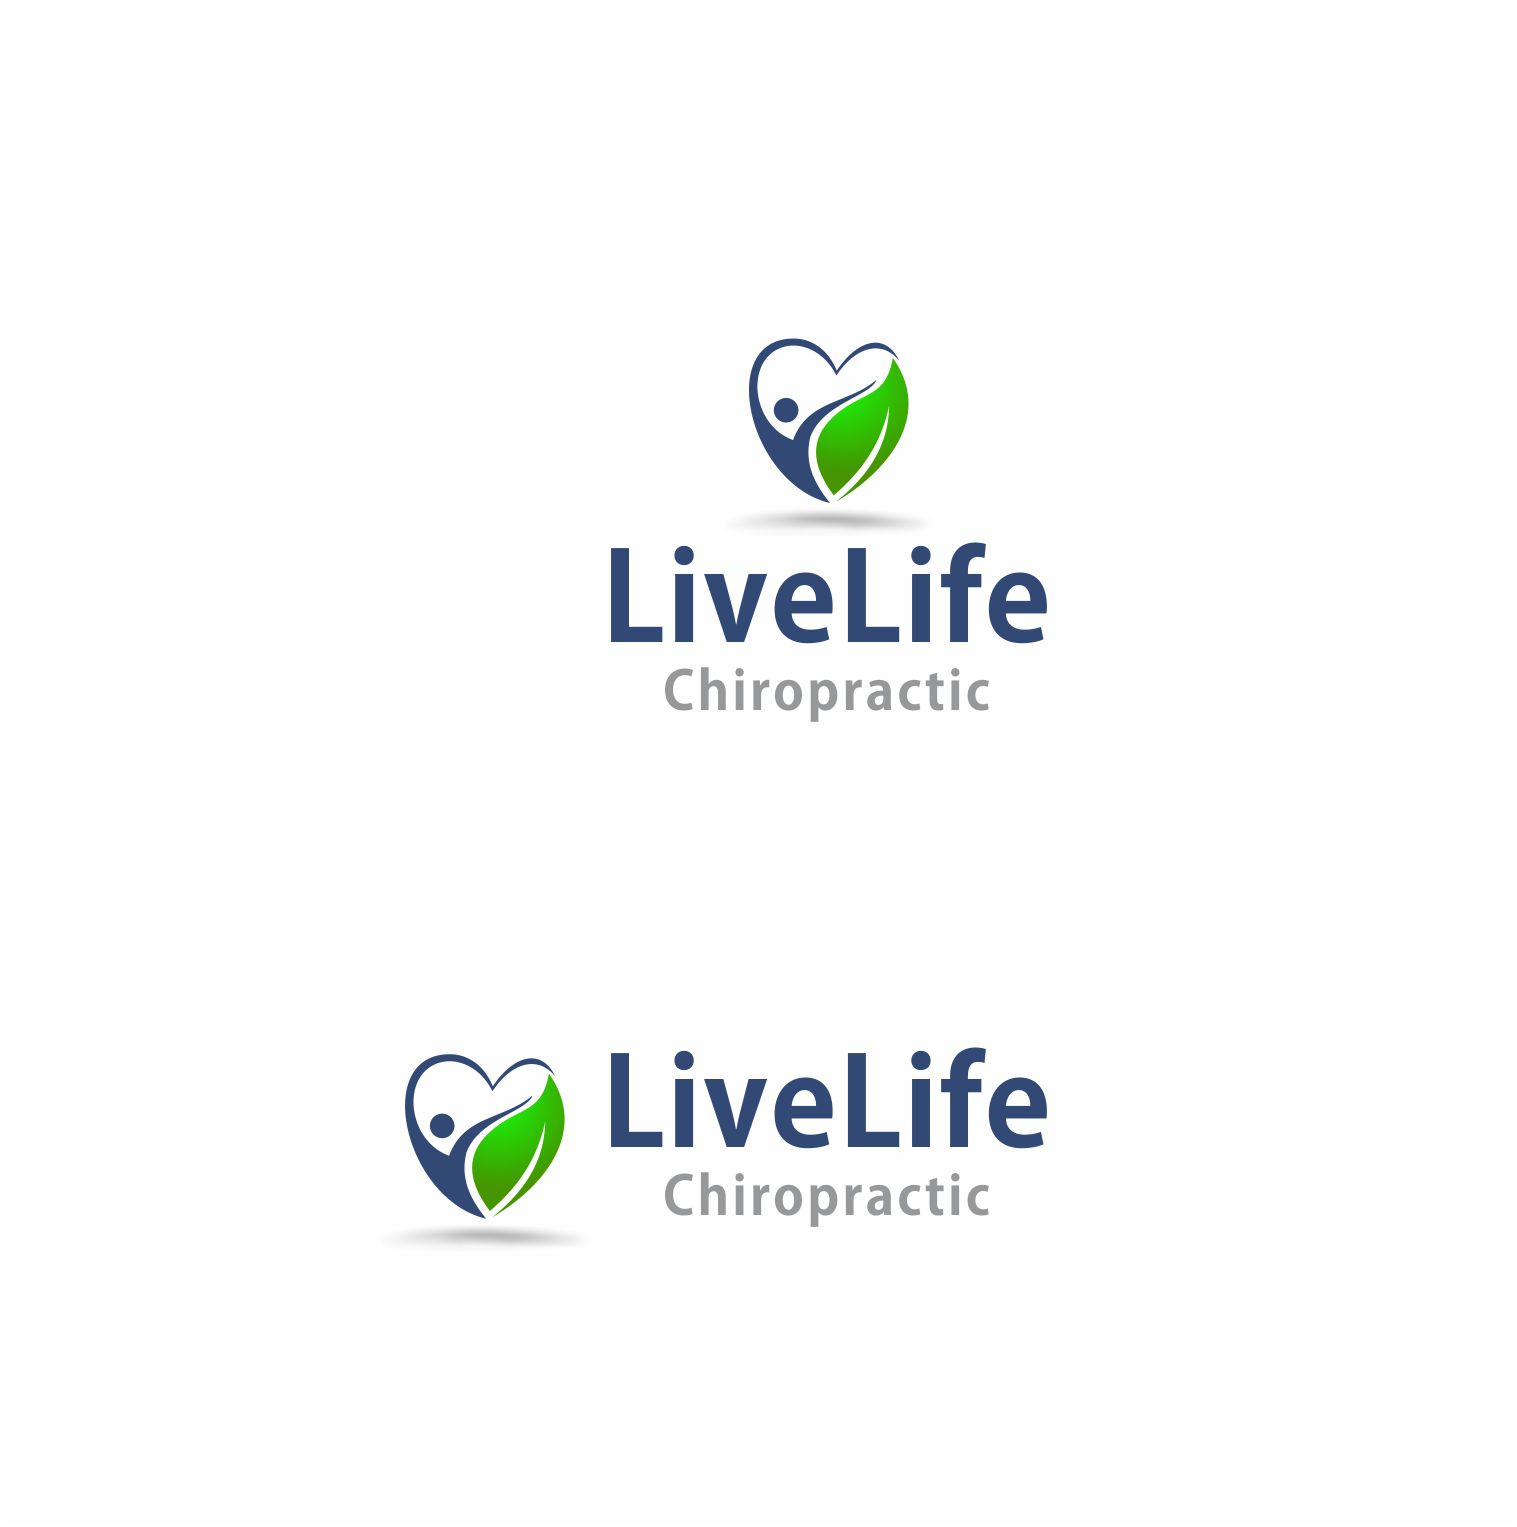 Logo Design by Muhammad Aslam - Entry No. 3 in the Logo Design Contest Captivating Logo Design for LiveLife Chiropractic.